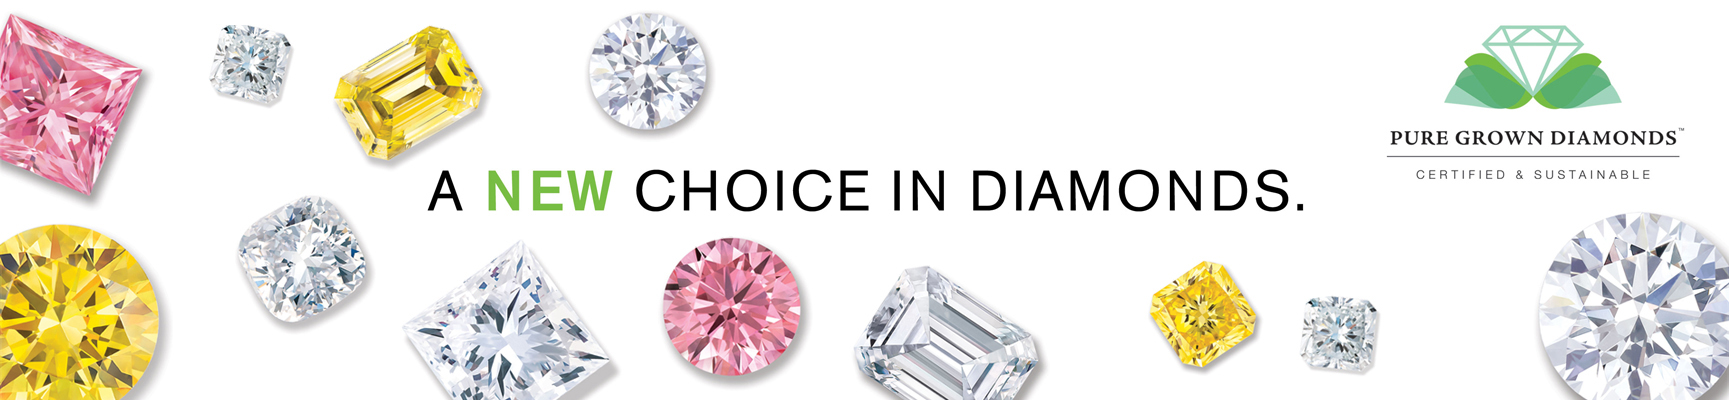 Your Widget Header Text Goes Here This banner image is 1600 x 600 pixels on desktop Occasions Fine Jewelry Midland, TX